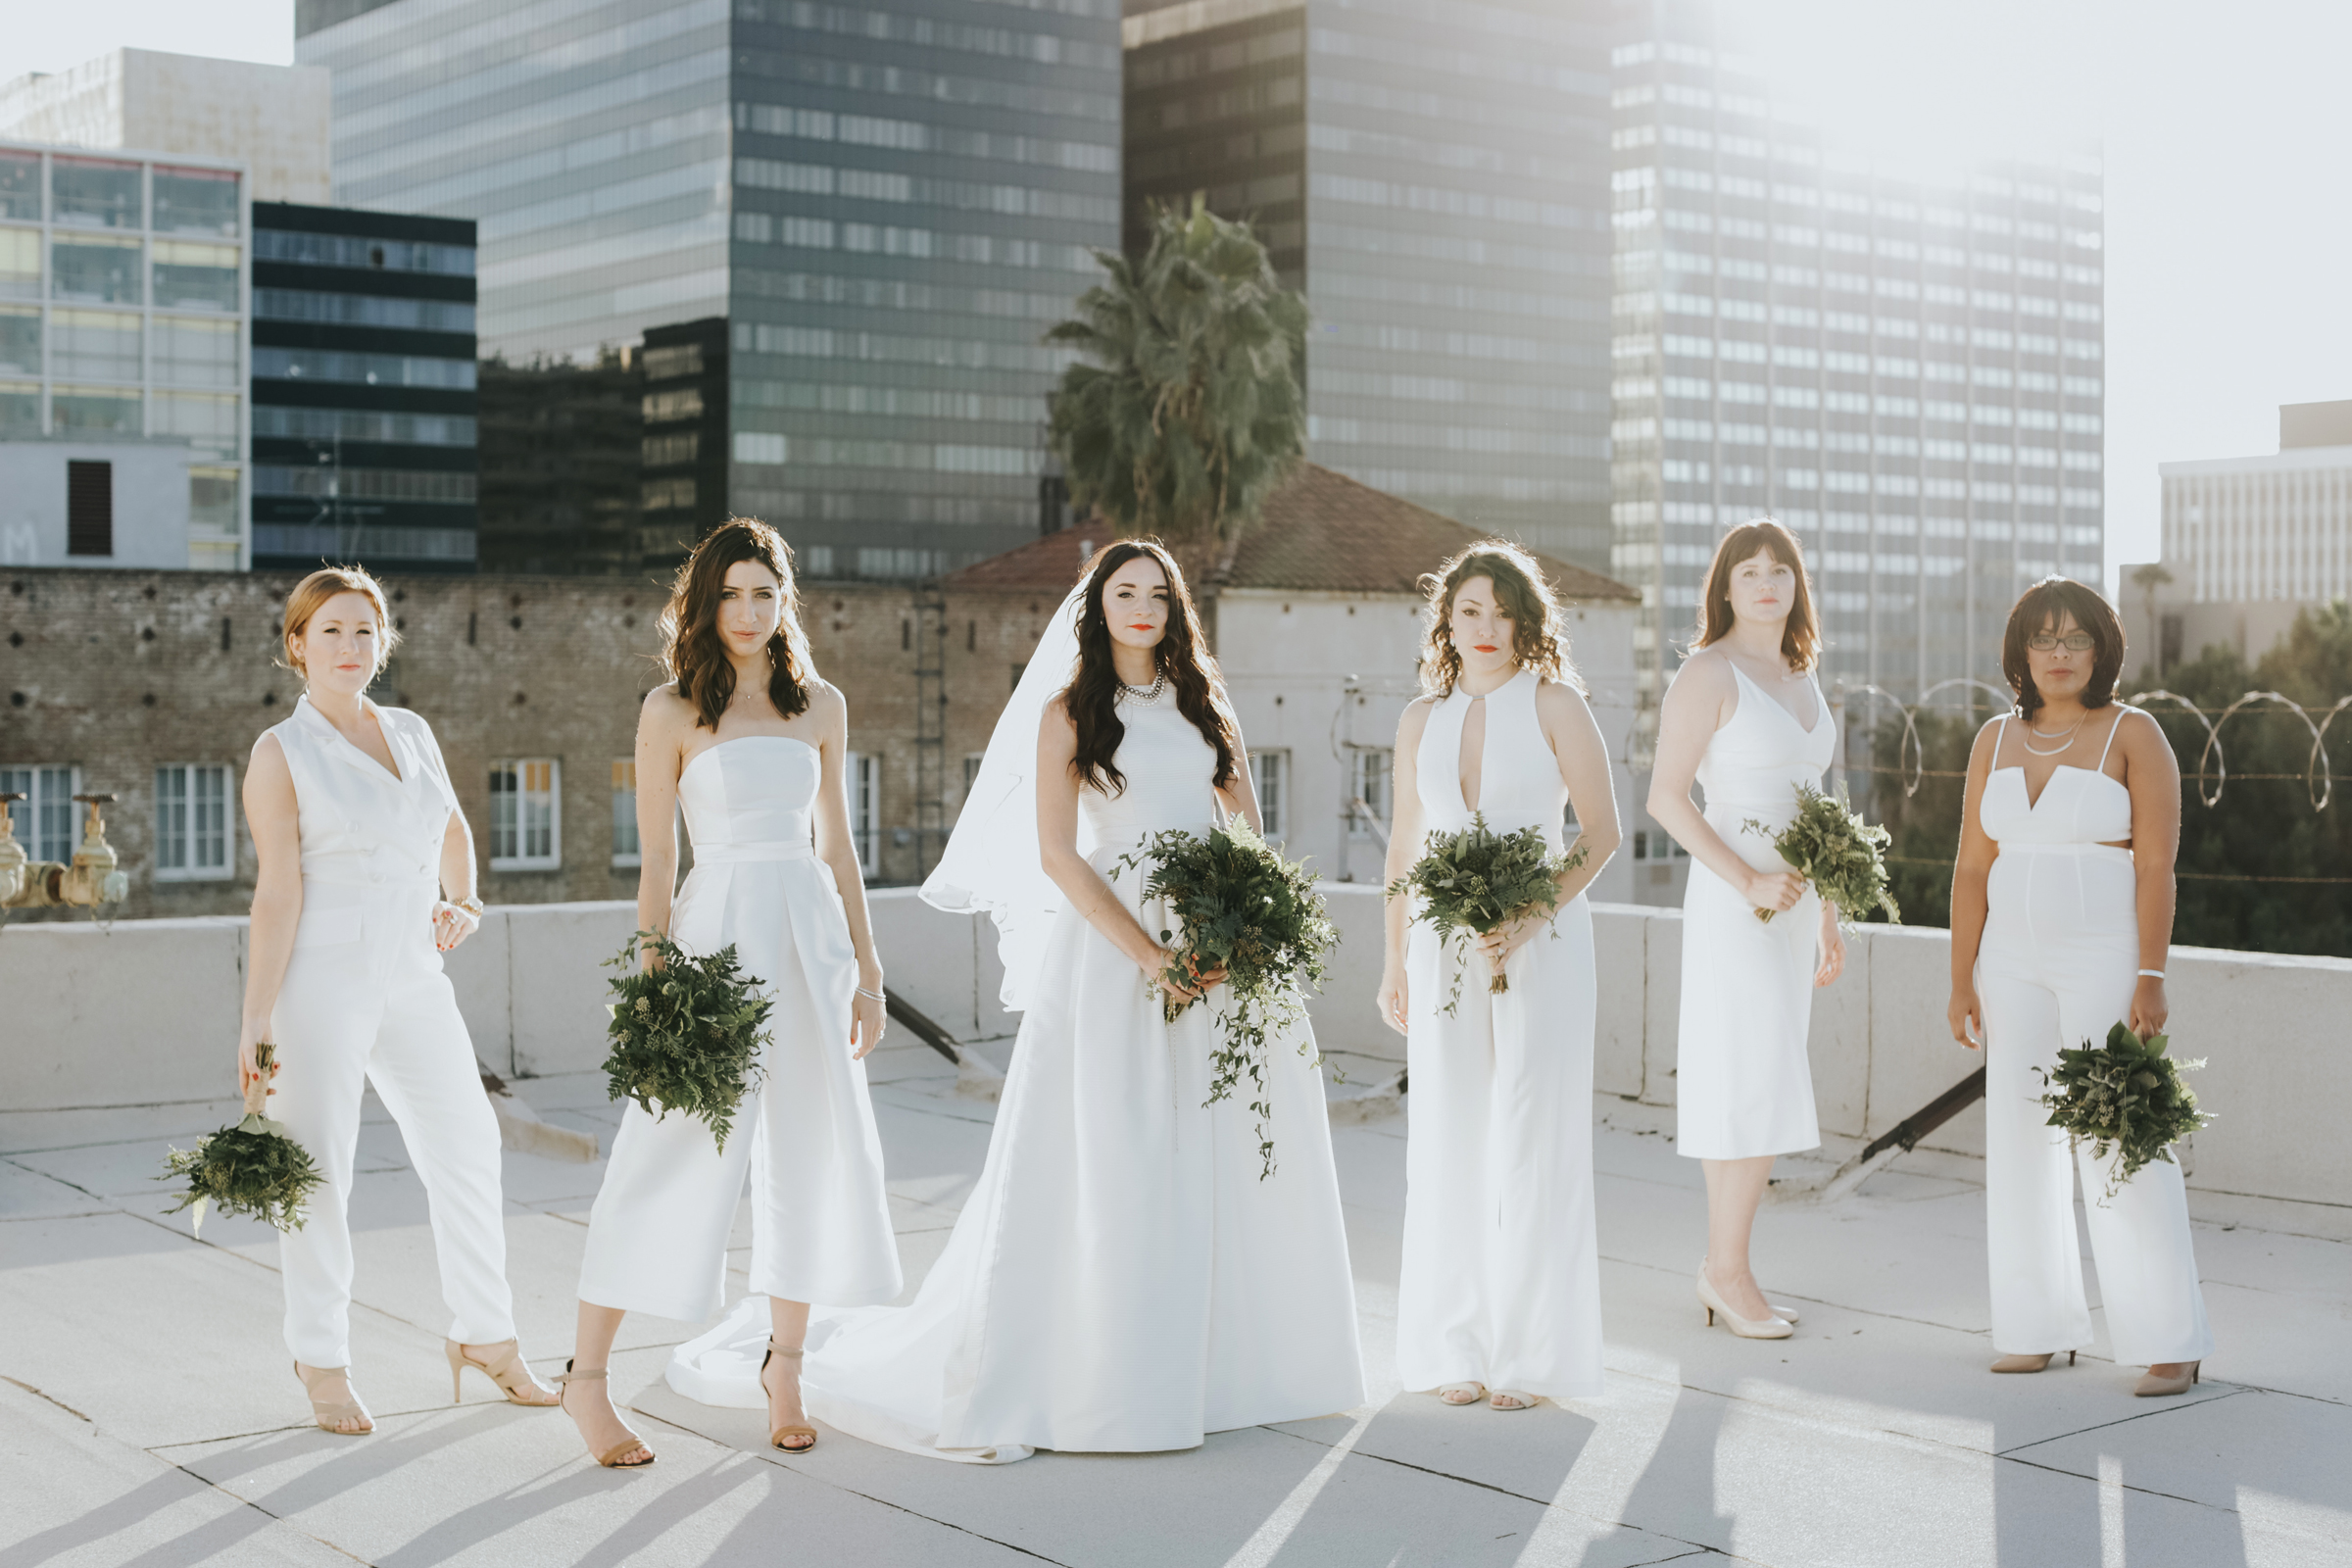 women posing on roof wearing white bridesmaids jumpsuits